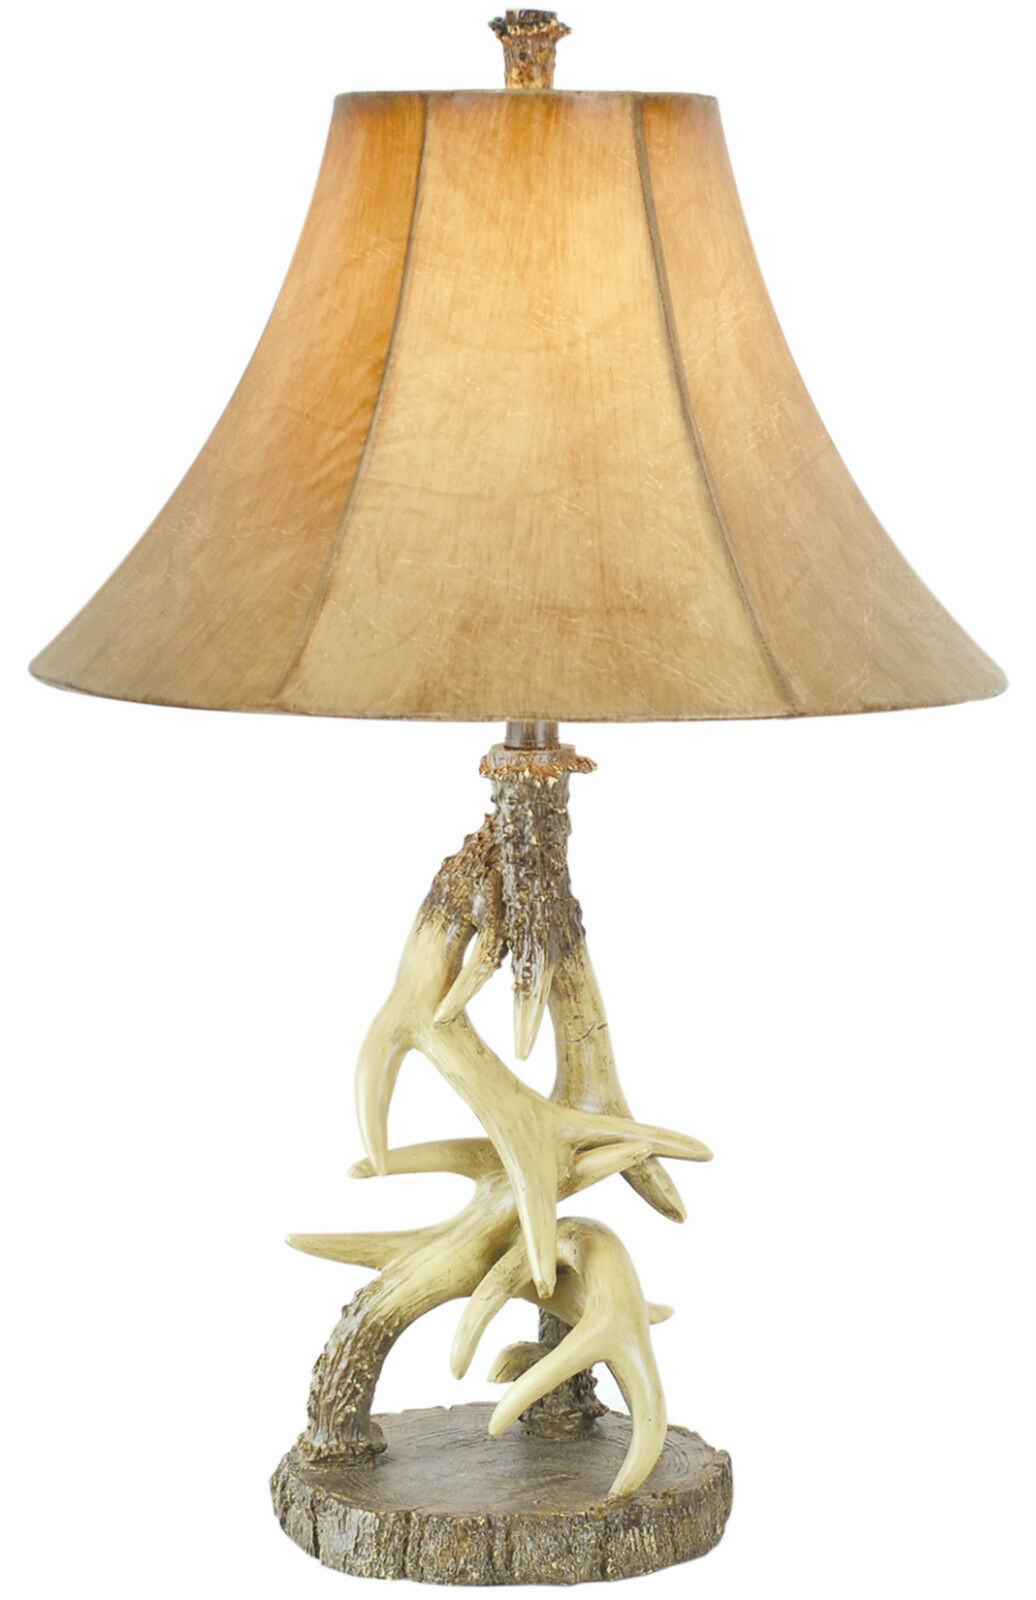 Antler table lamp 29in faux leather shade 3 way 100w for Log cabin chandelier